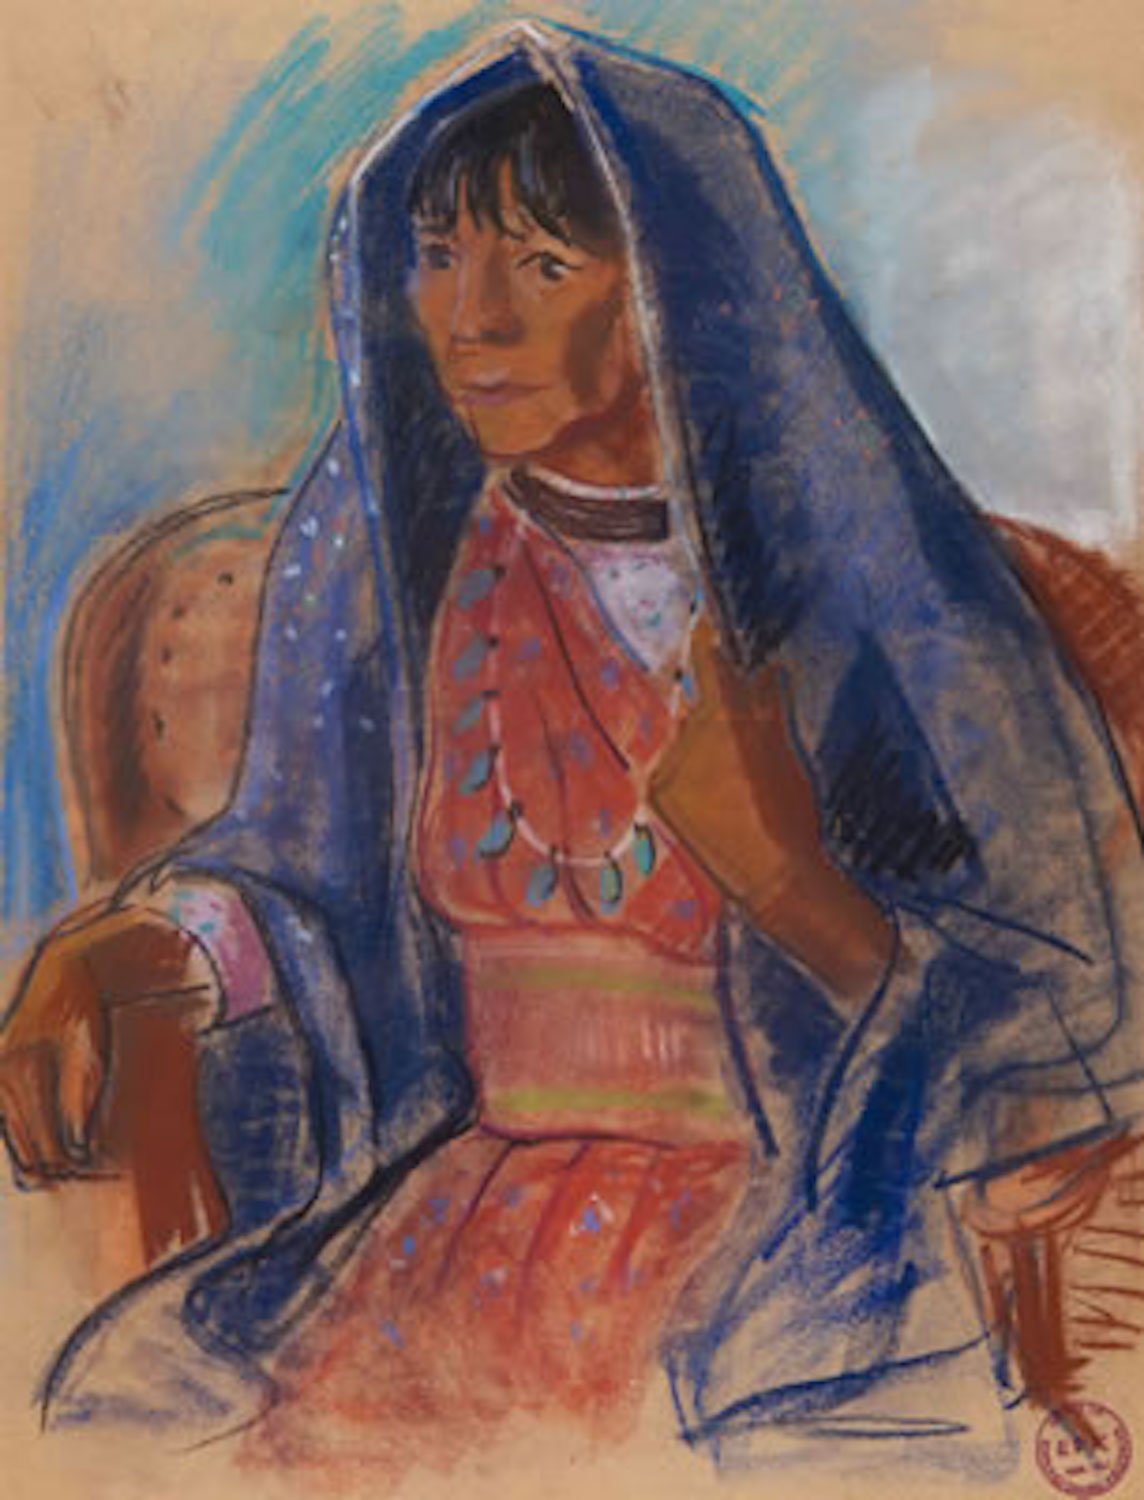 Woman with Blue Shawl, 24 x 18.5, pastel on paper